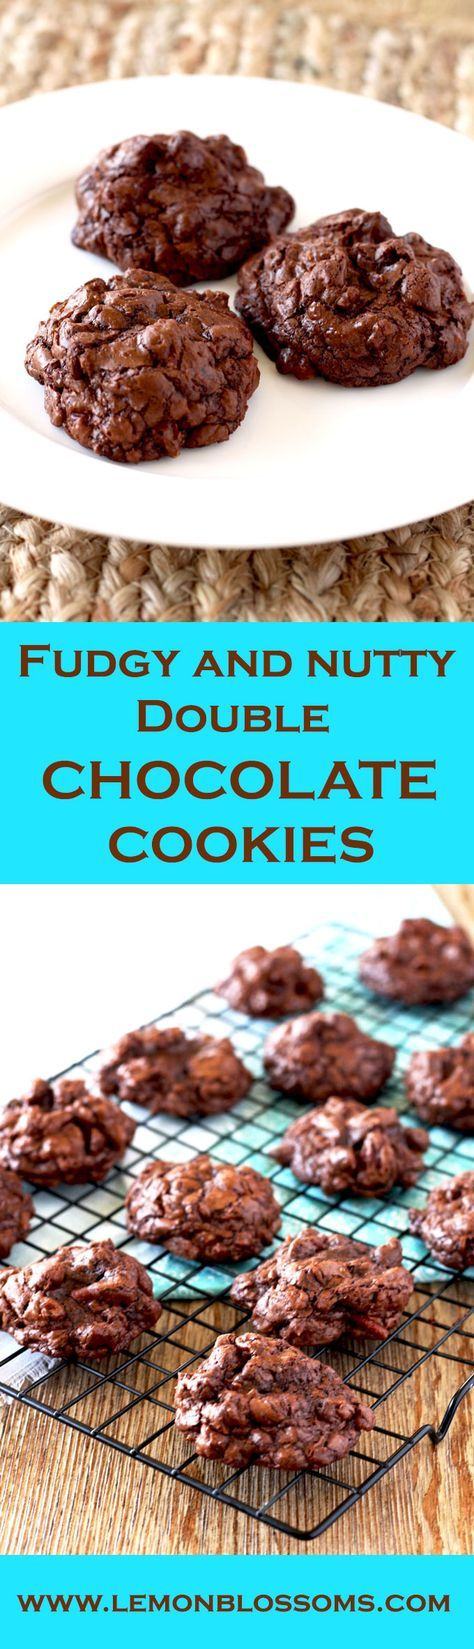 Gooey chocolate, chocolate chunks and crunchy pecans make these almost flour-less Fudgy and Nutty Double Chocolate Cookies pure decadence! Thick, rich and irresistible. These cookies are a chocolate lover's dream! via @https://www.pinterest.com/lmnblossoms/